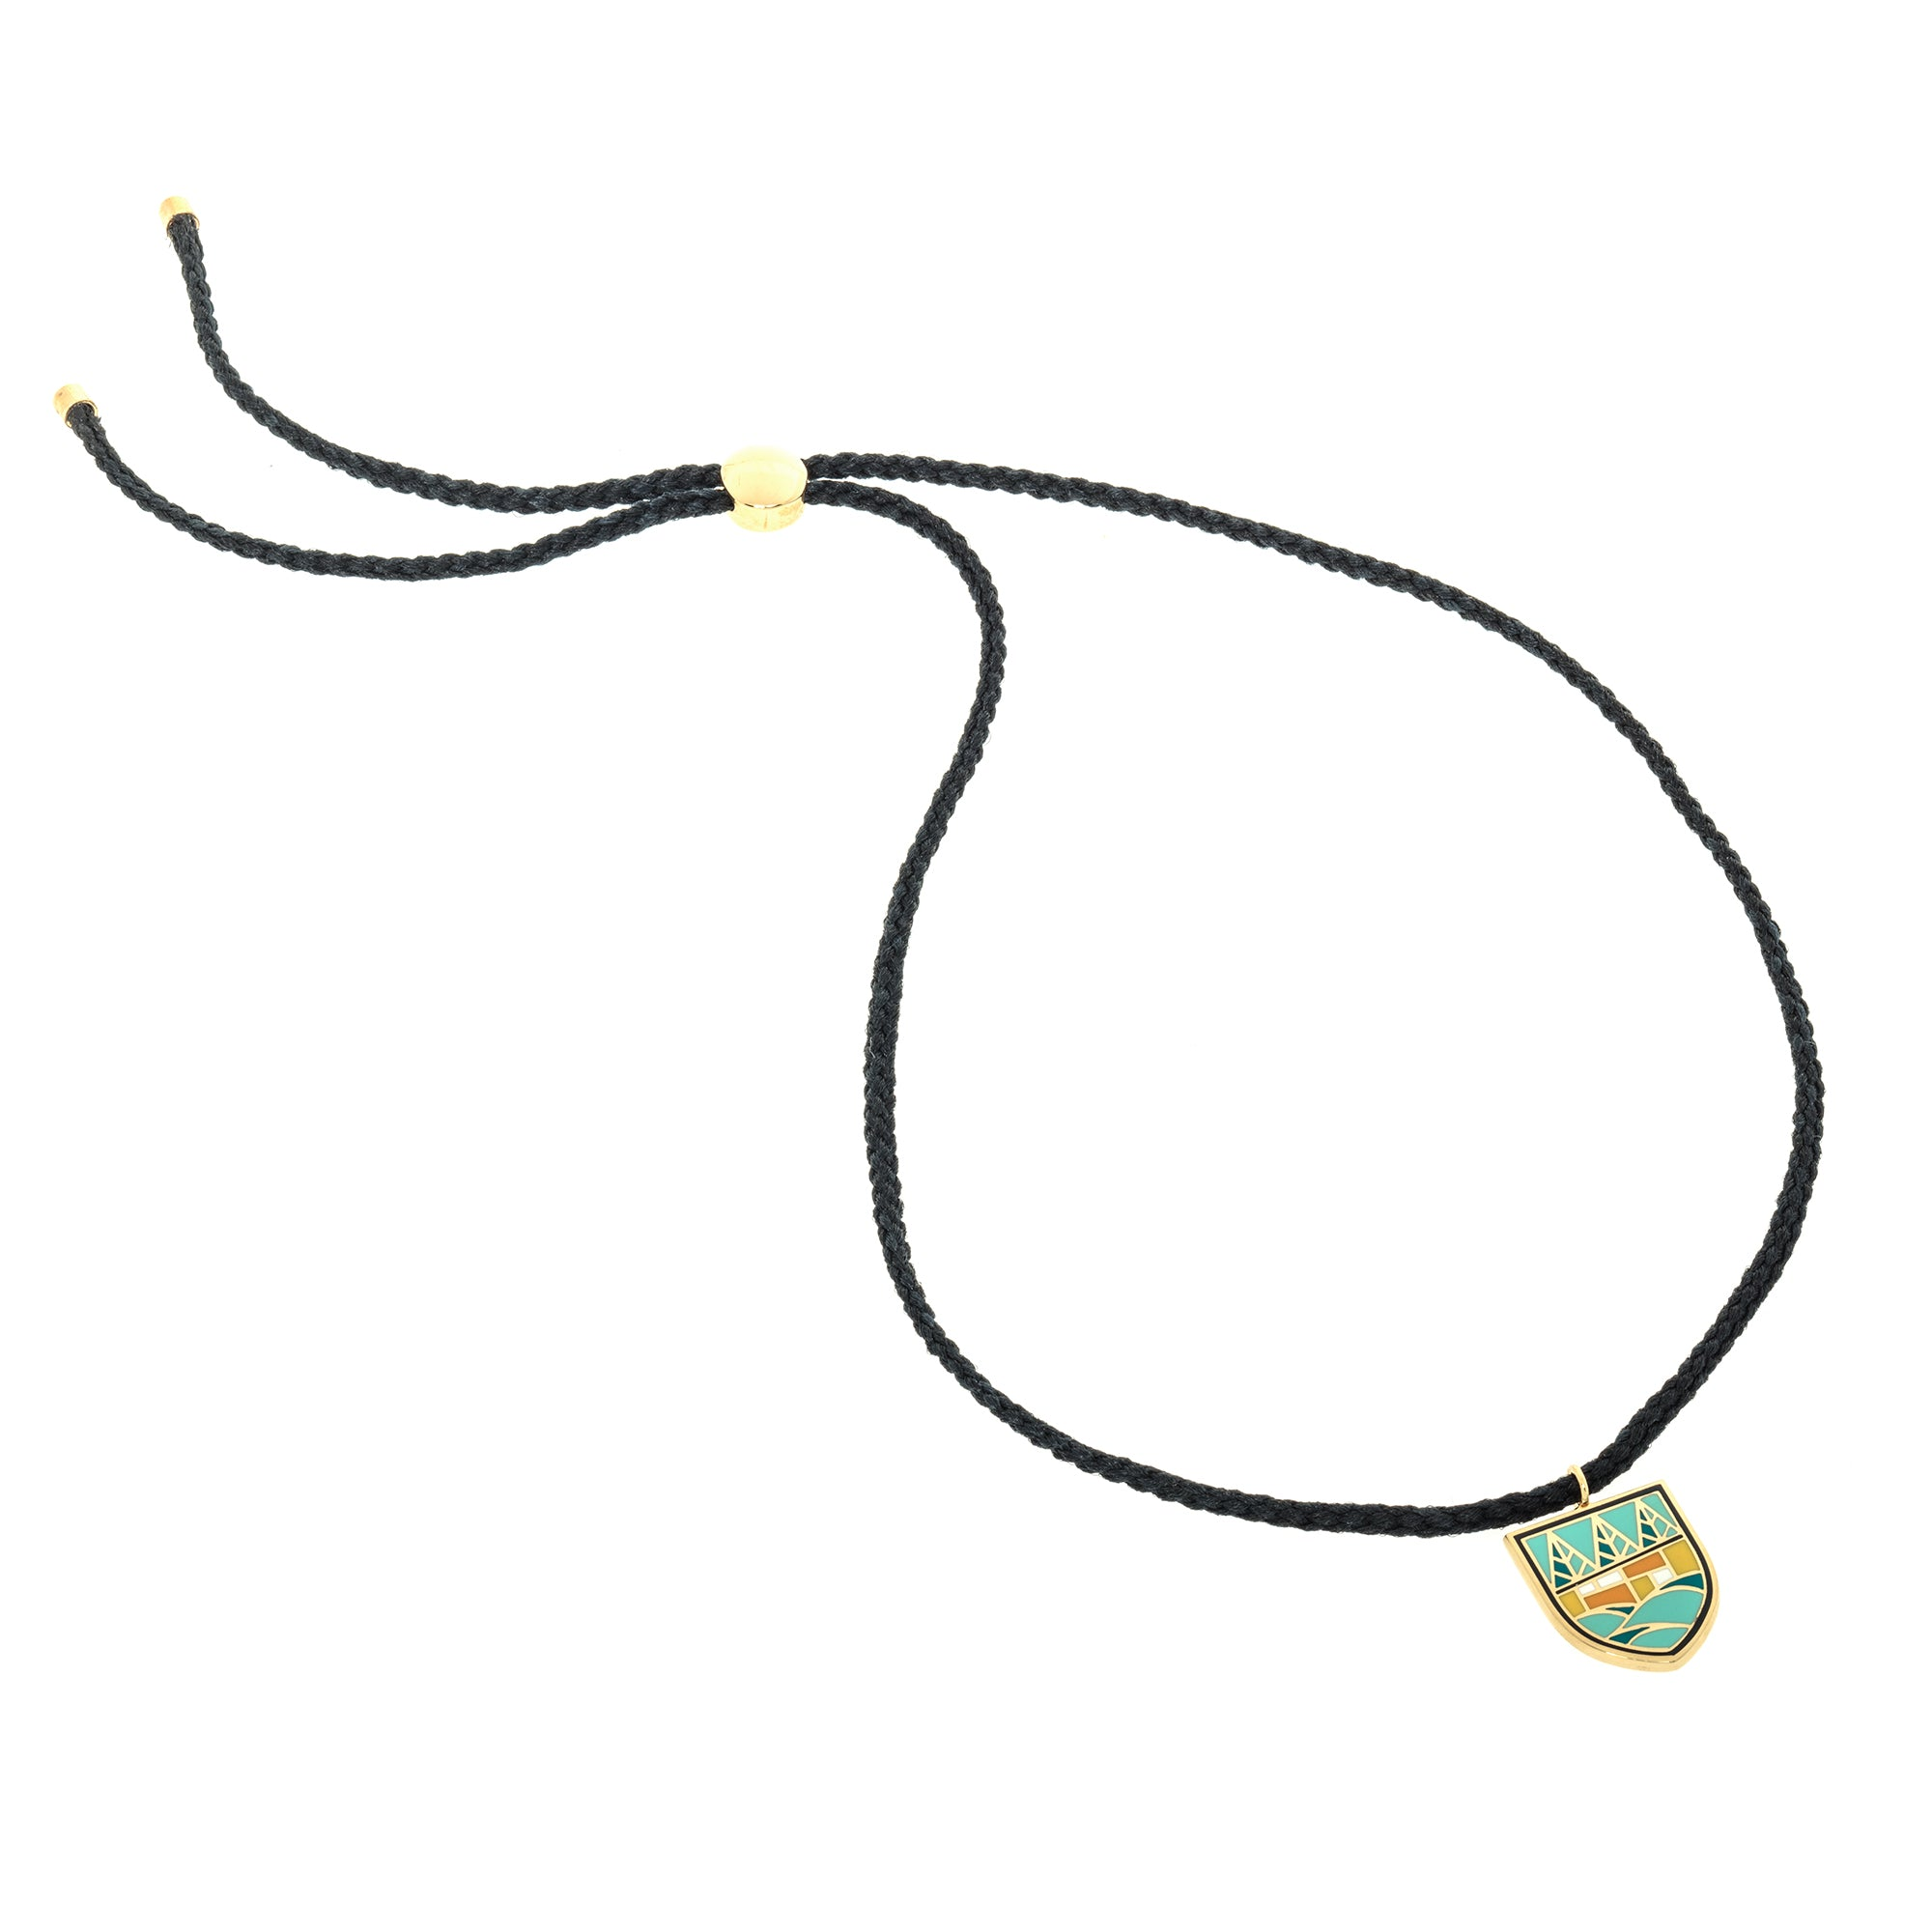 Camp Cord Necklace